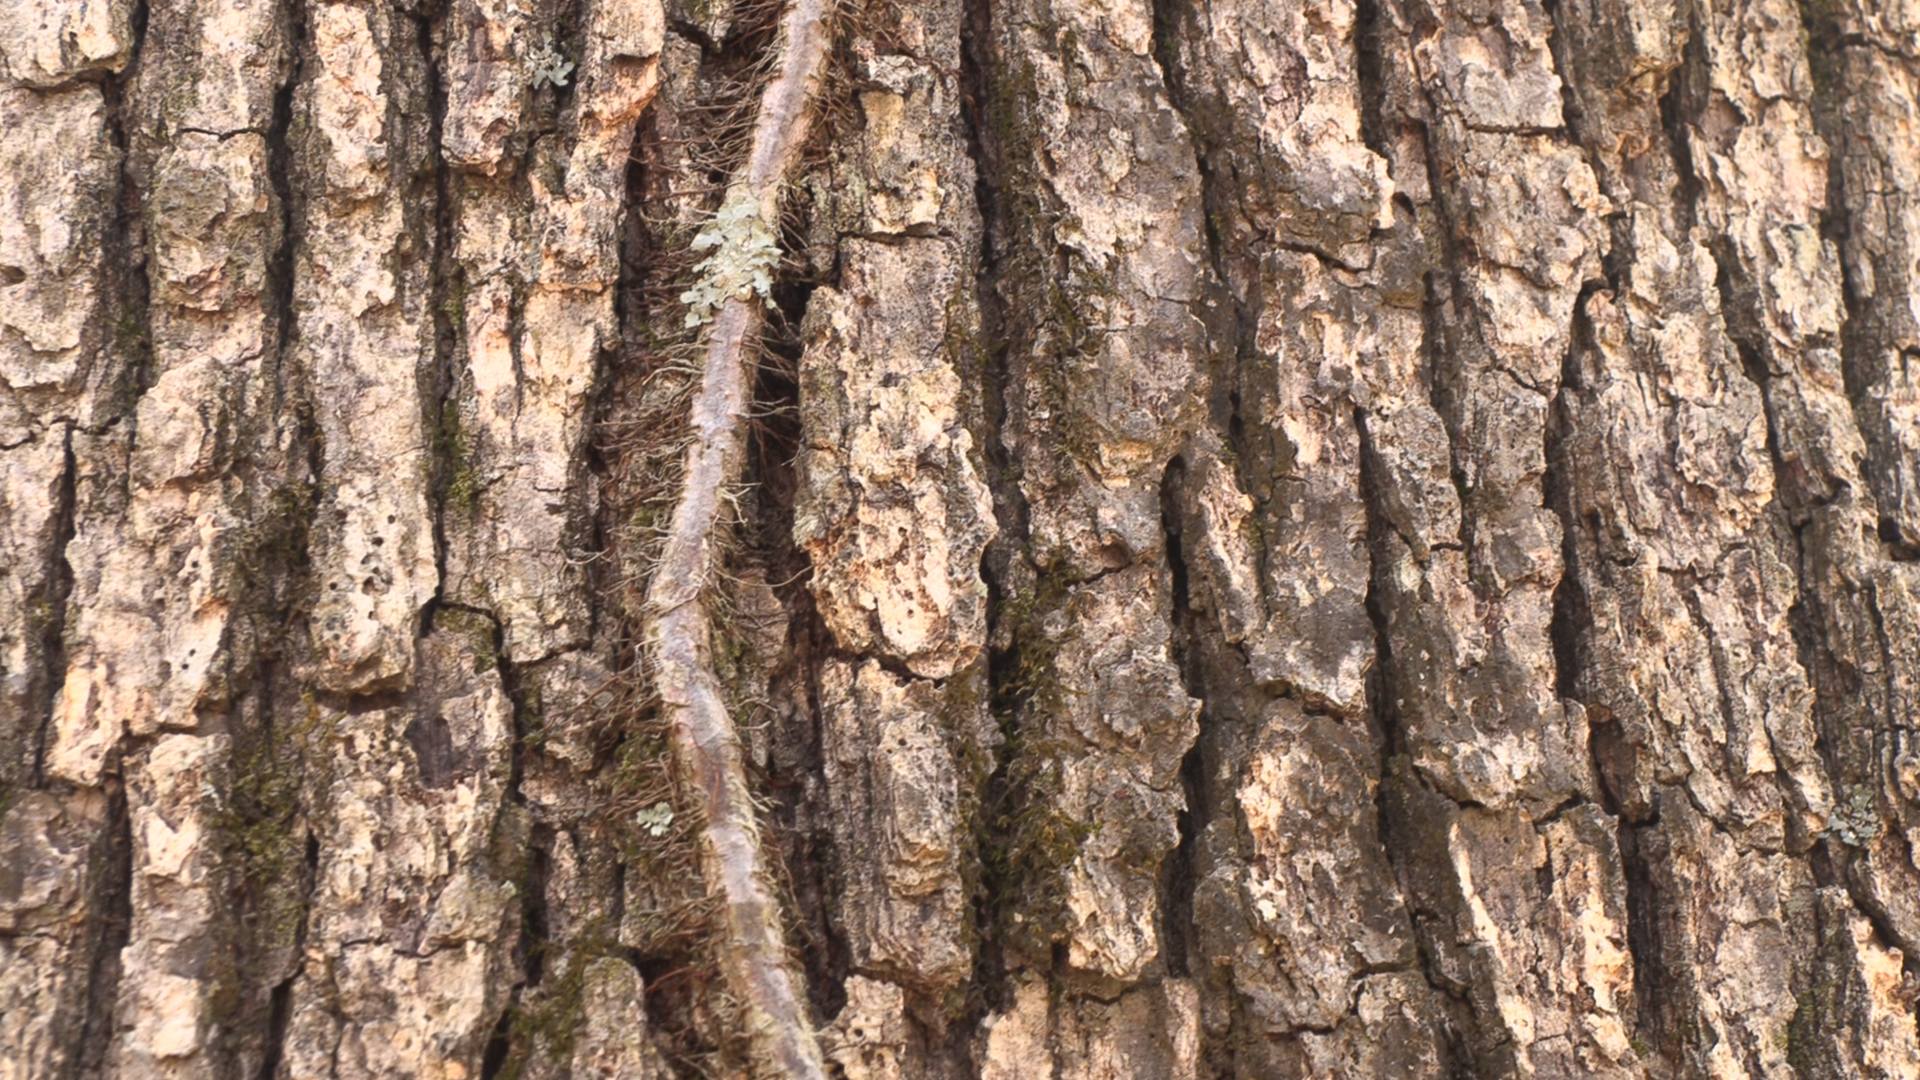 On this picture you can see the bark of an oak tree.